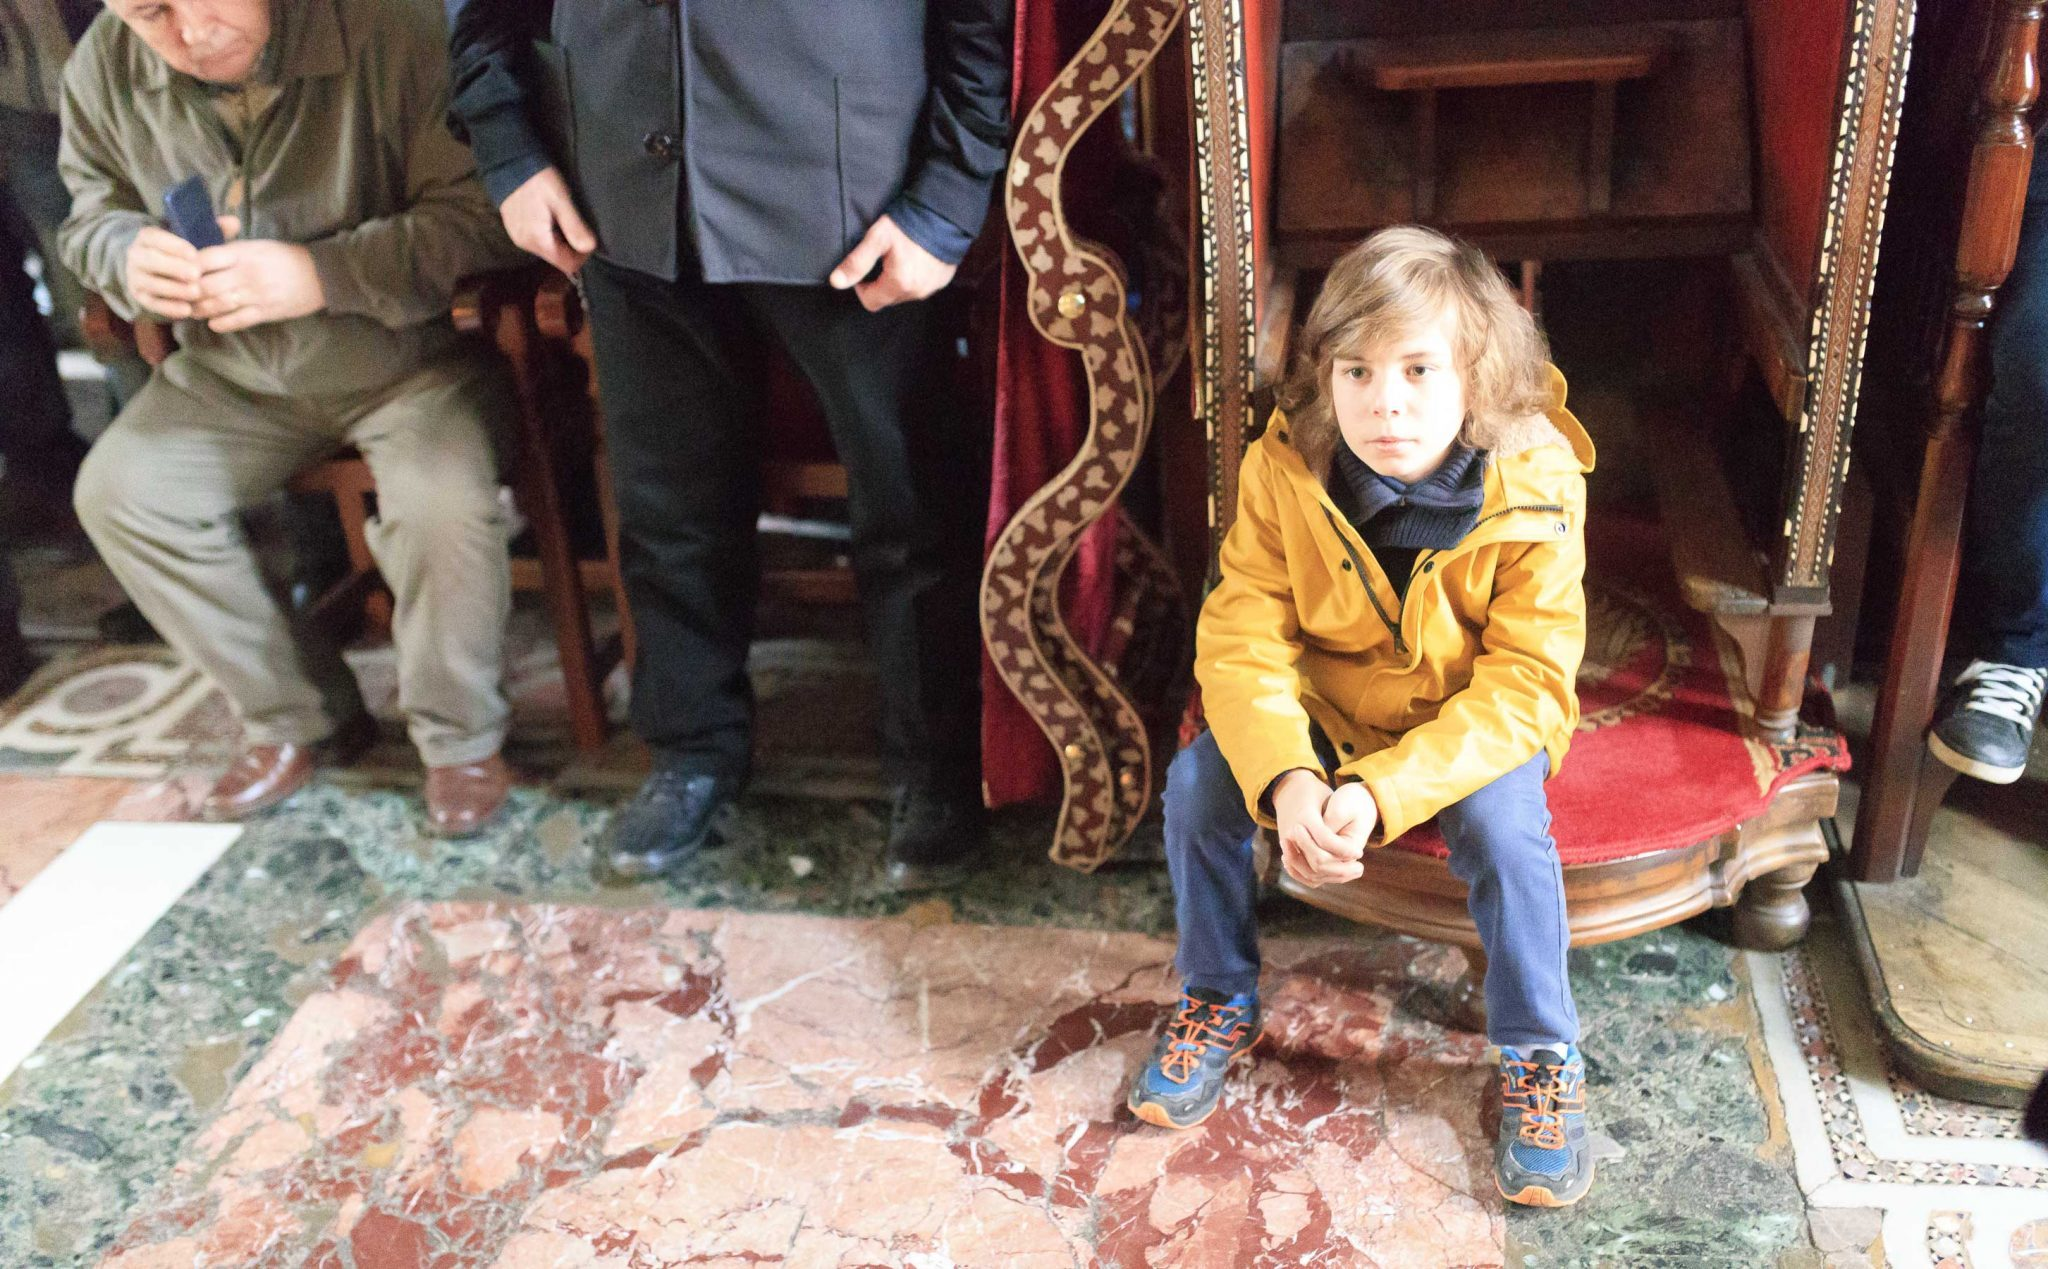 Children on Archbishop Throne - Ascetic Experience - Vatopedi, Vatopaidi Monastery Holy Mountain (Athos)